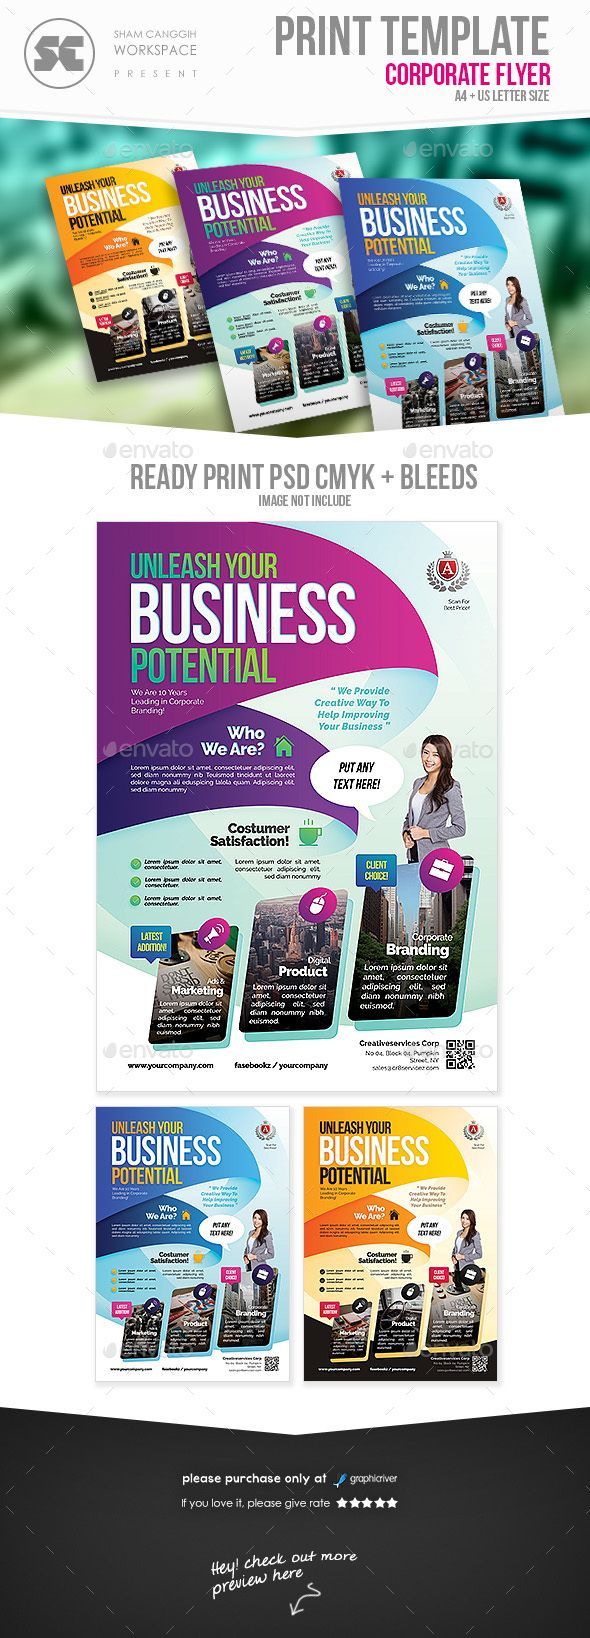 best ideas about business flyer templates business flyer business flyer template psd